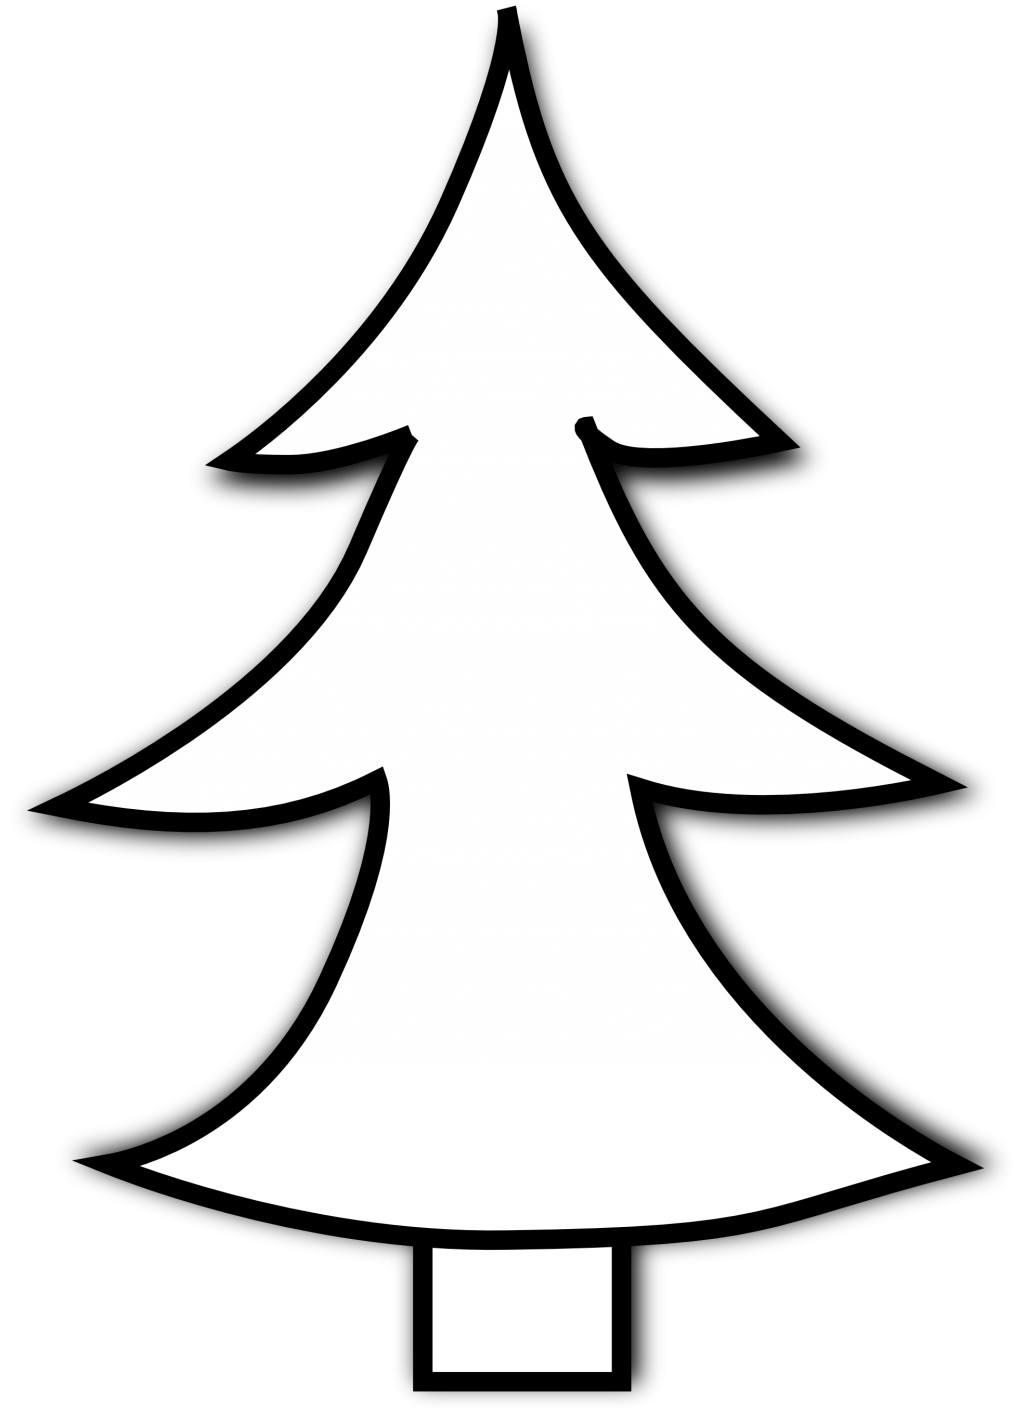 winter tree silhouette clip art at getdrawings com free for rh getdrawings com clipart black and white christmas tree christmas tree black and white clipart free